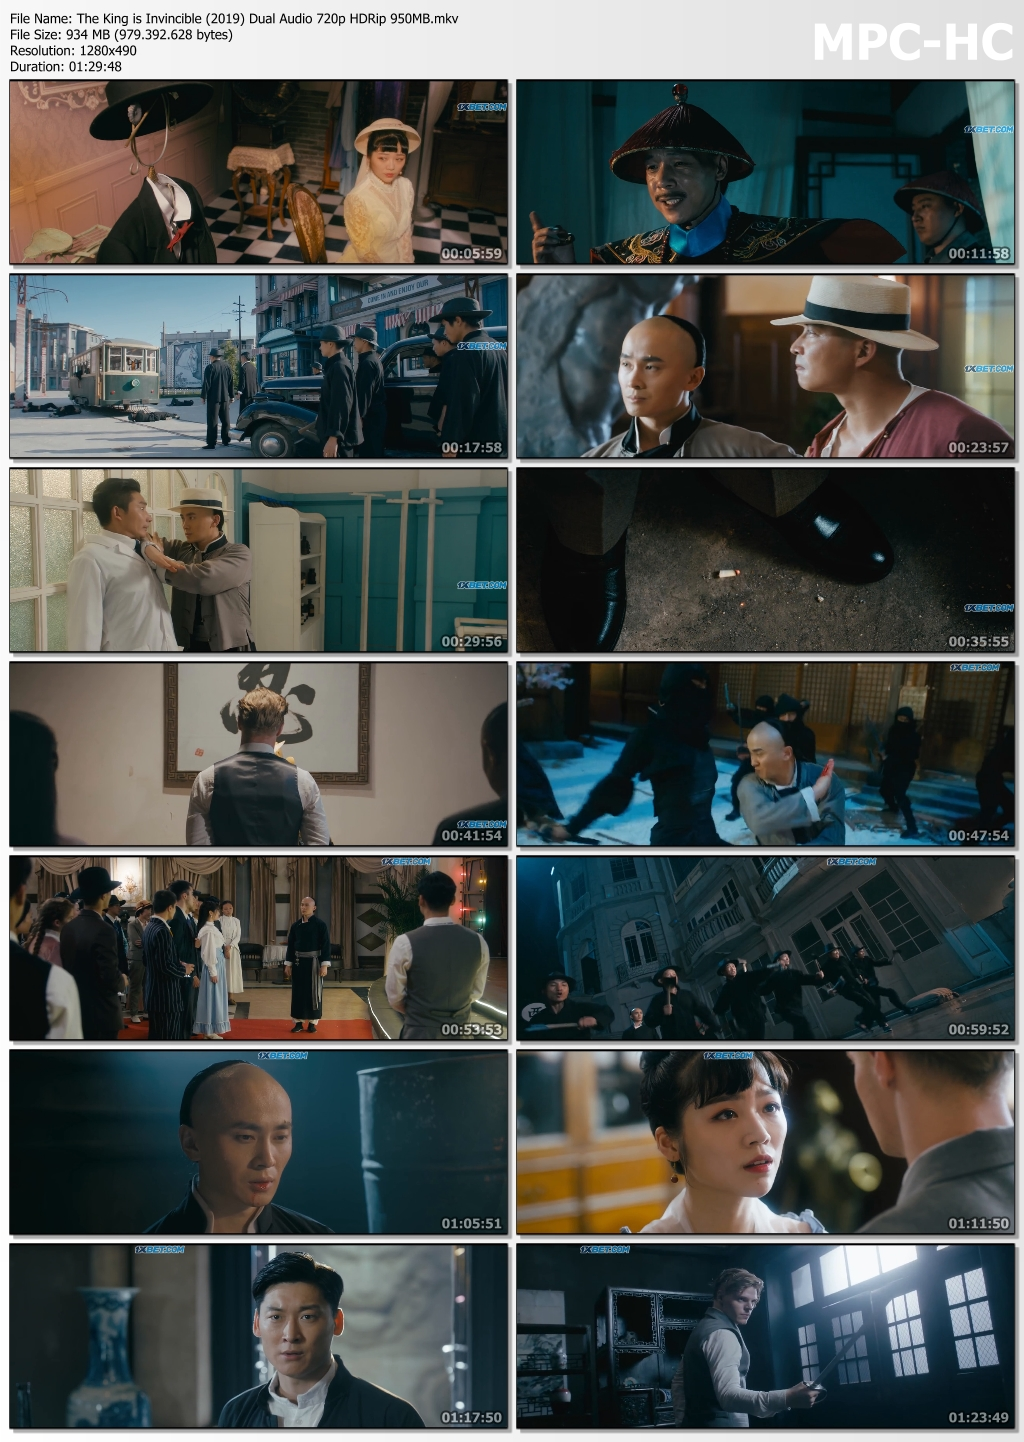 The-King-is-Invincible-2019-Dual-Audio-720p-HDRip-950-MB-mkv-thumbs